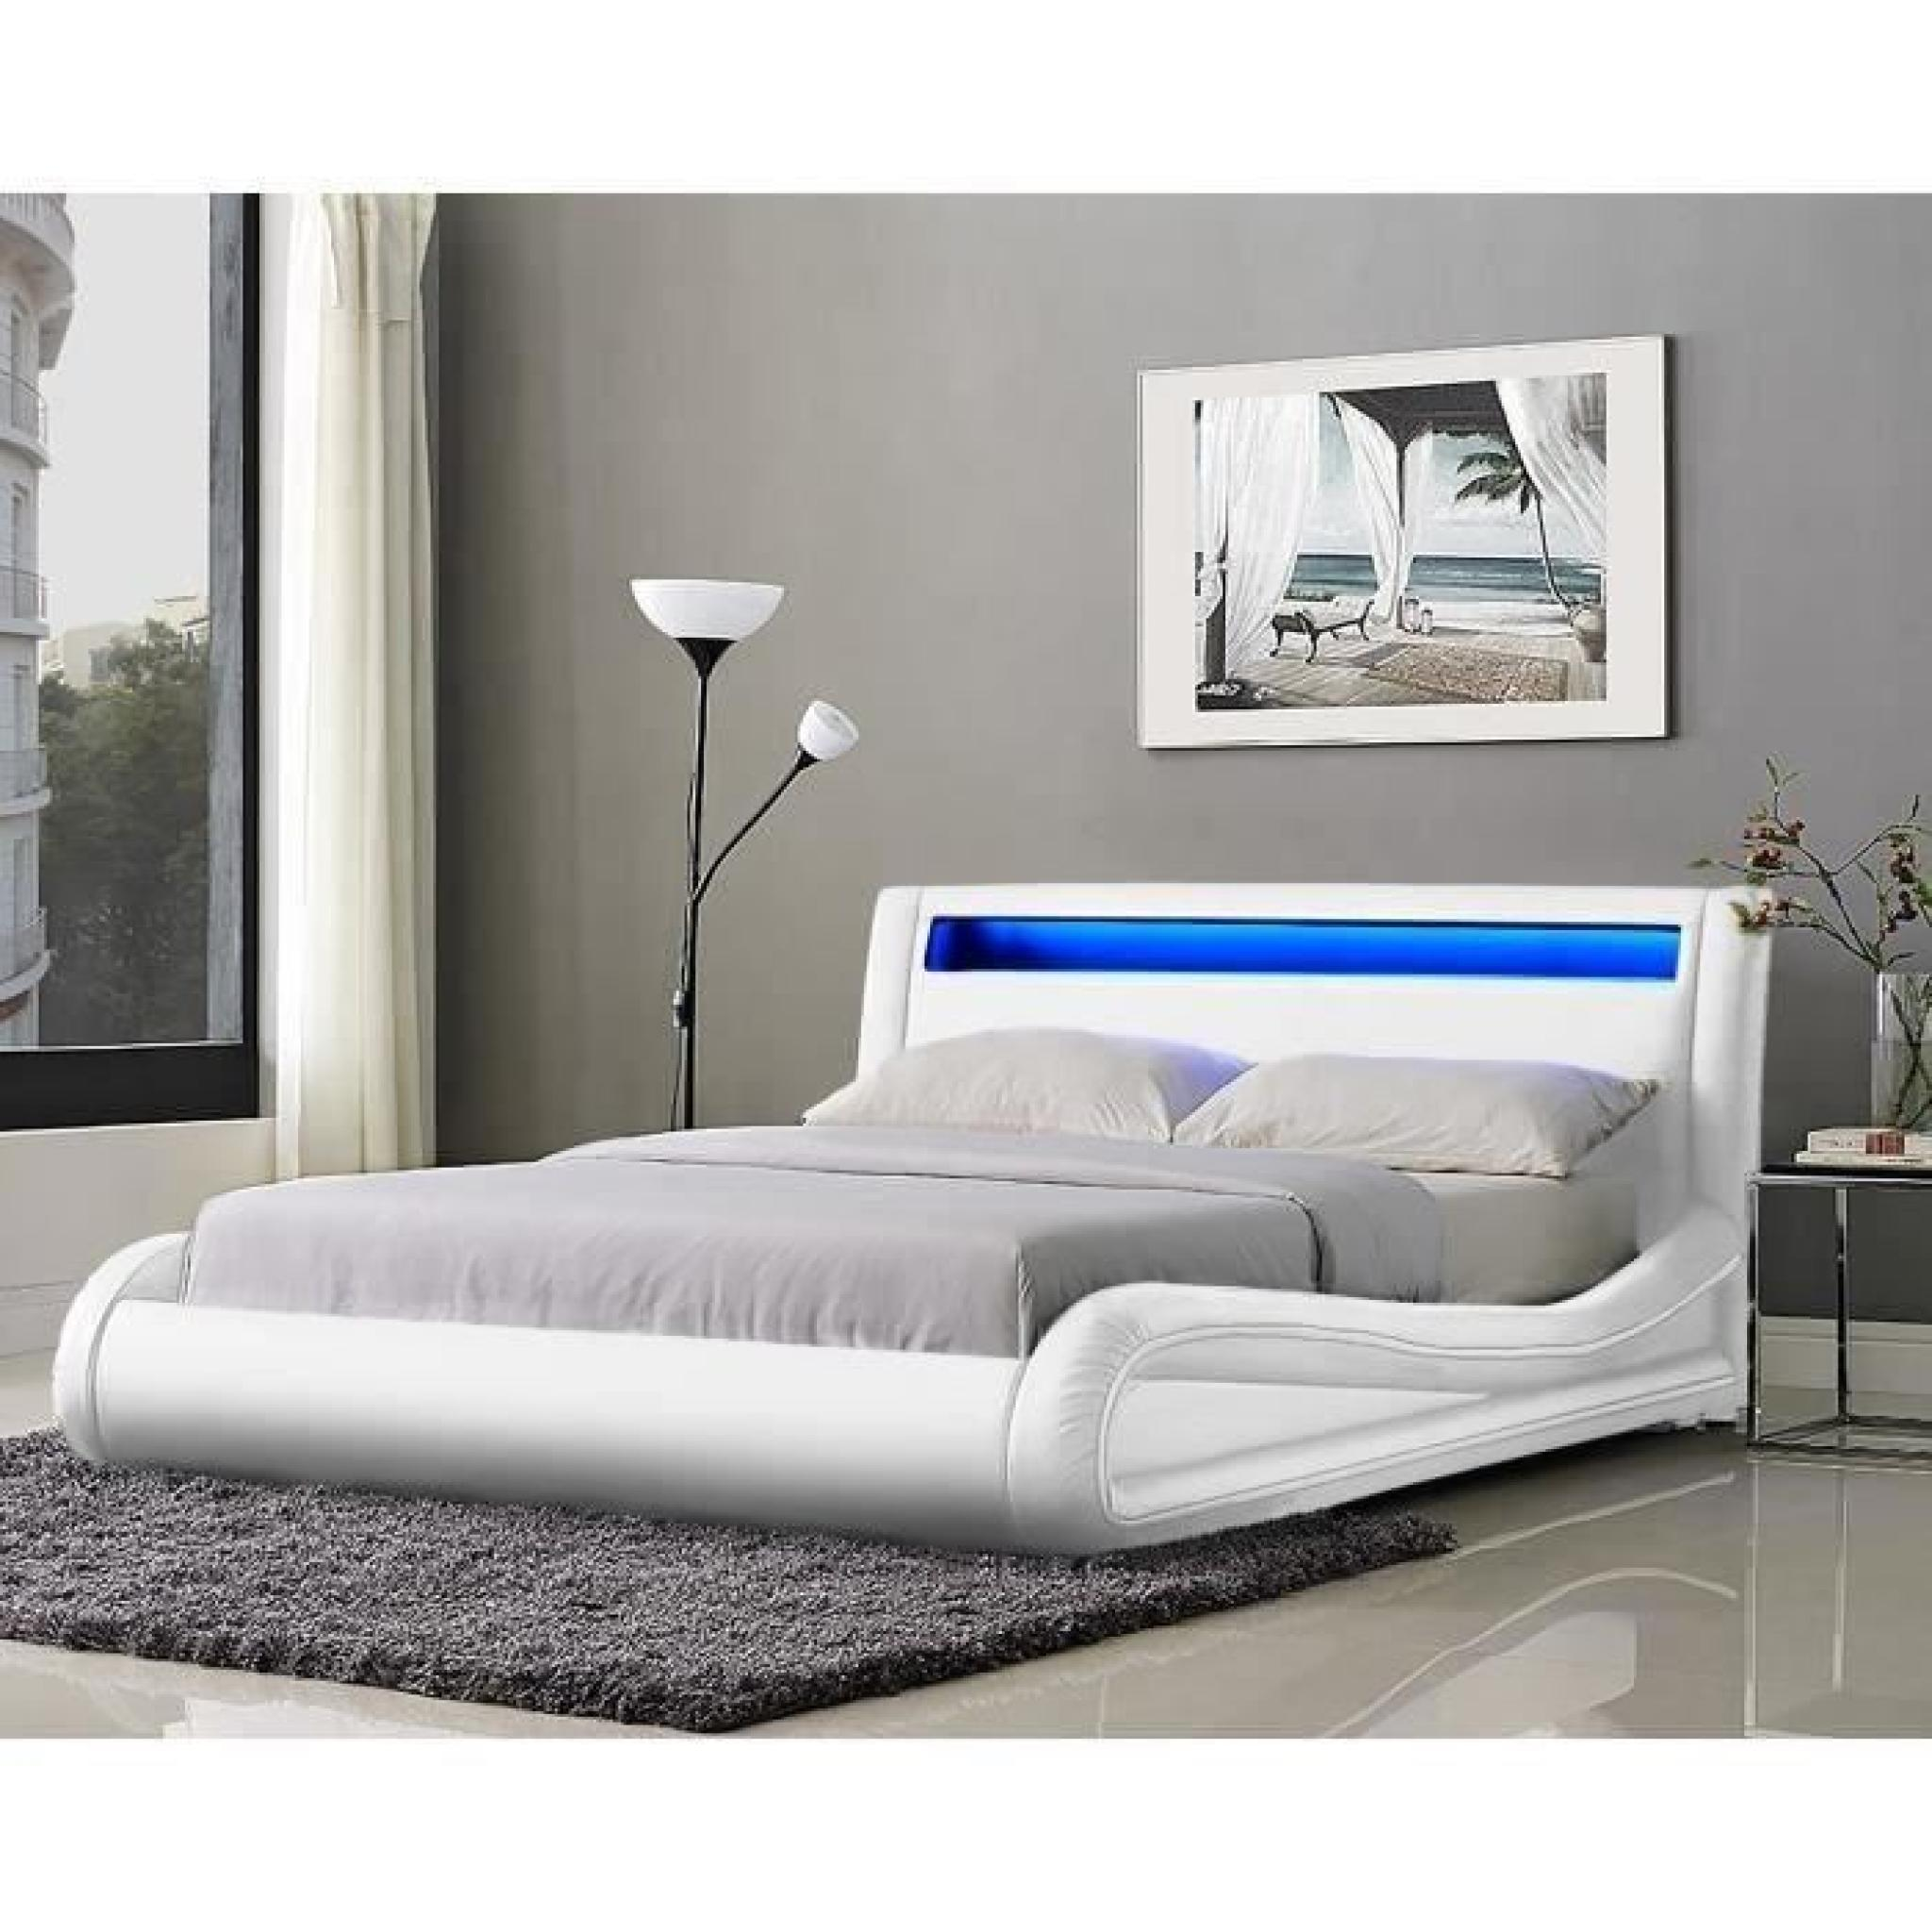 neptune lit led adulte 180x200 cm blanc achat vente lit. Black Bedroom Furniture Sets. Home Design Ideas